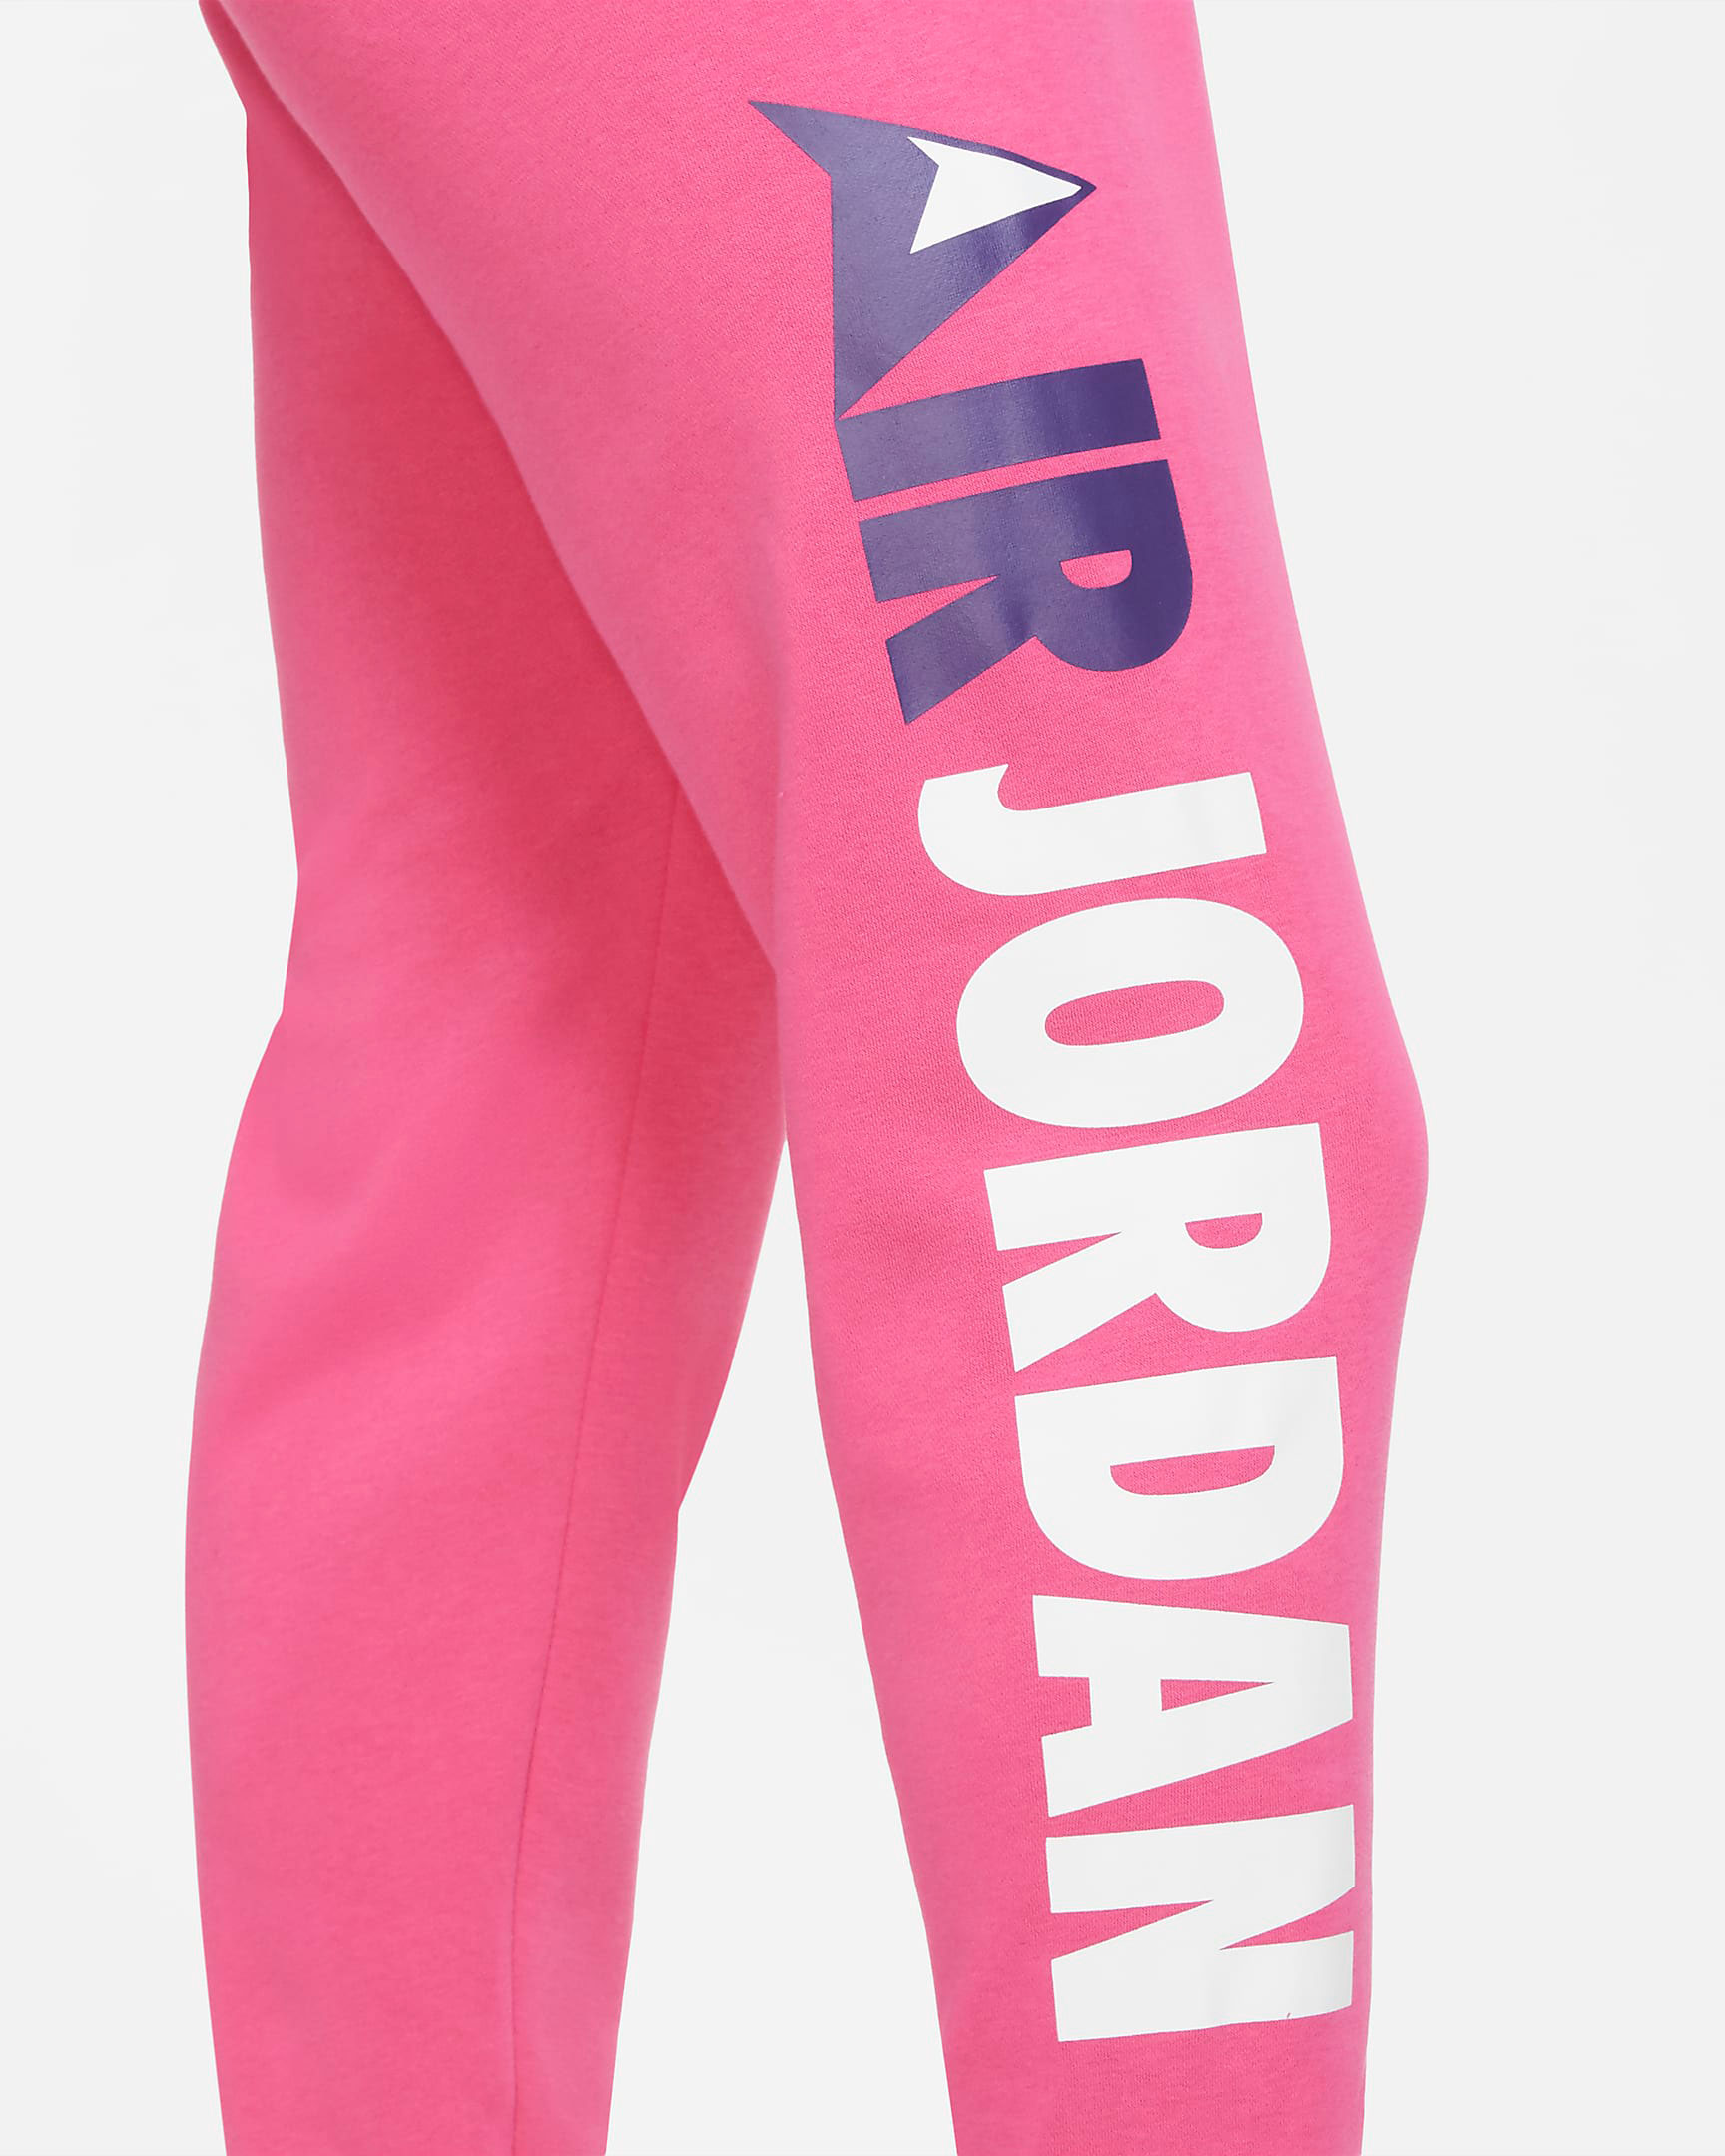 jordan-winter-utility-pants-watermelon-pink-5